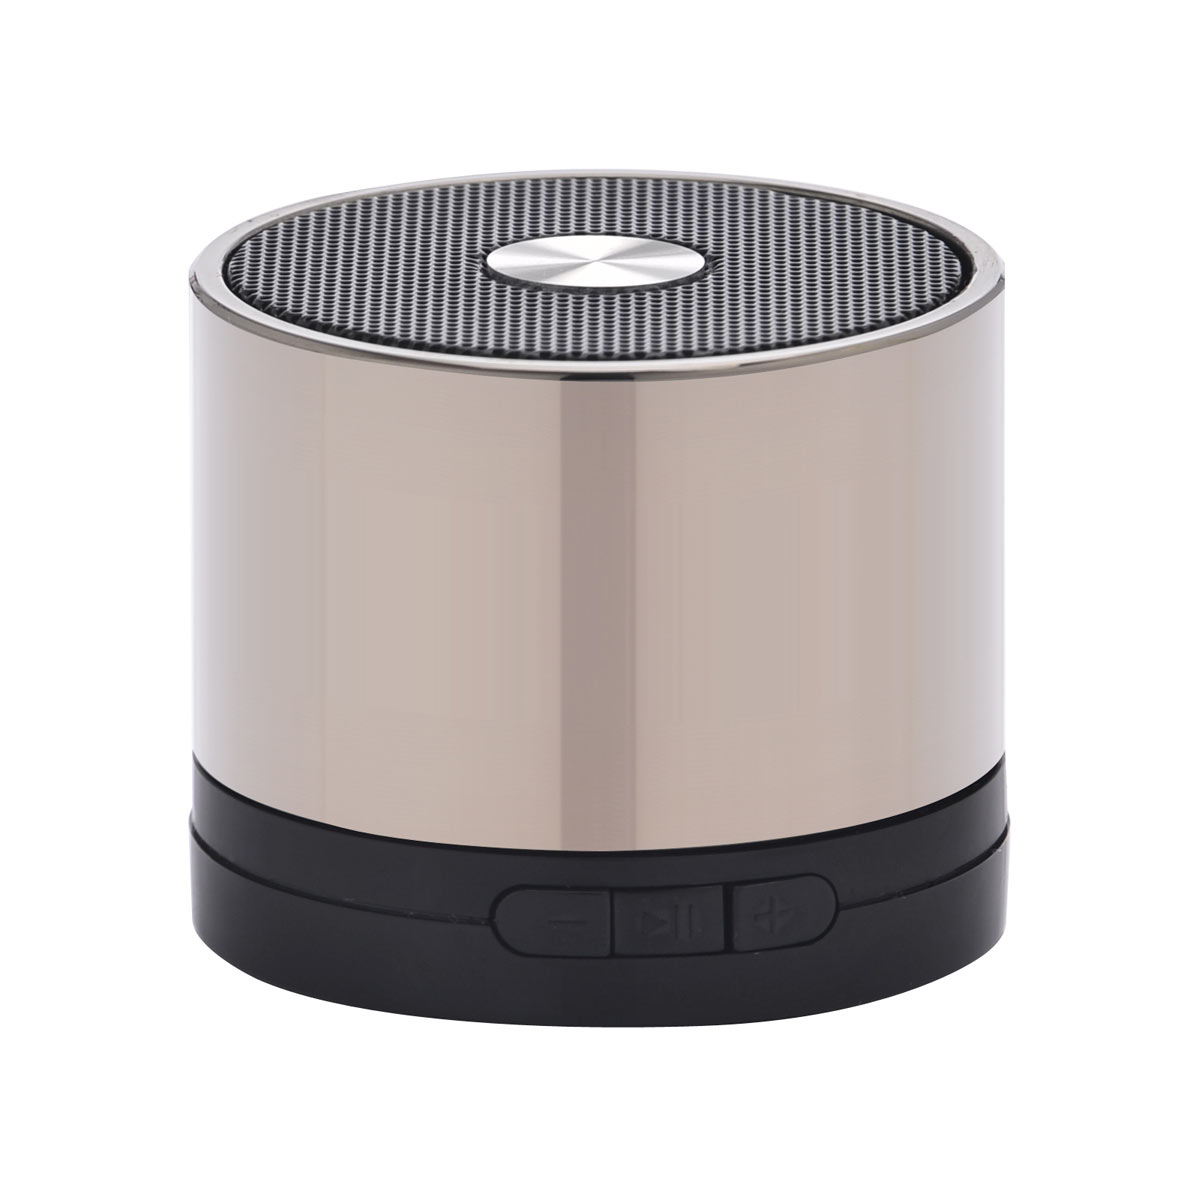 innovatec minispeaker chrome dock enceinte bluetooth innovatec sur. Black Bedroom Furniture Sets. Home Design Ideas